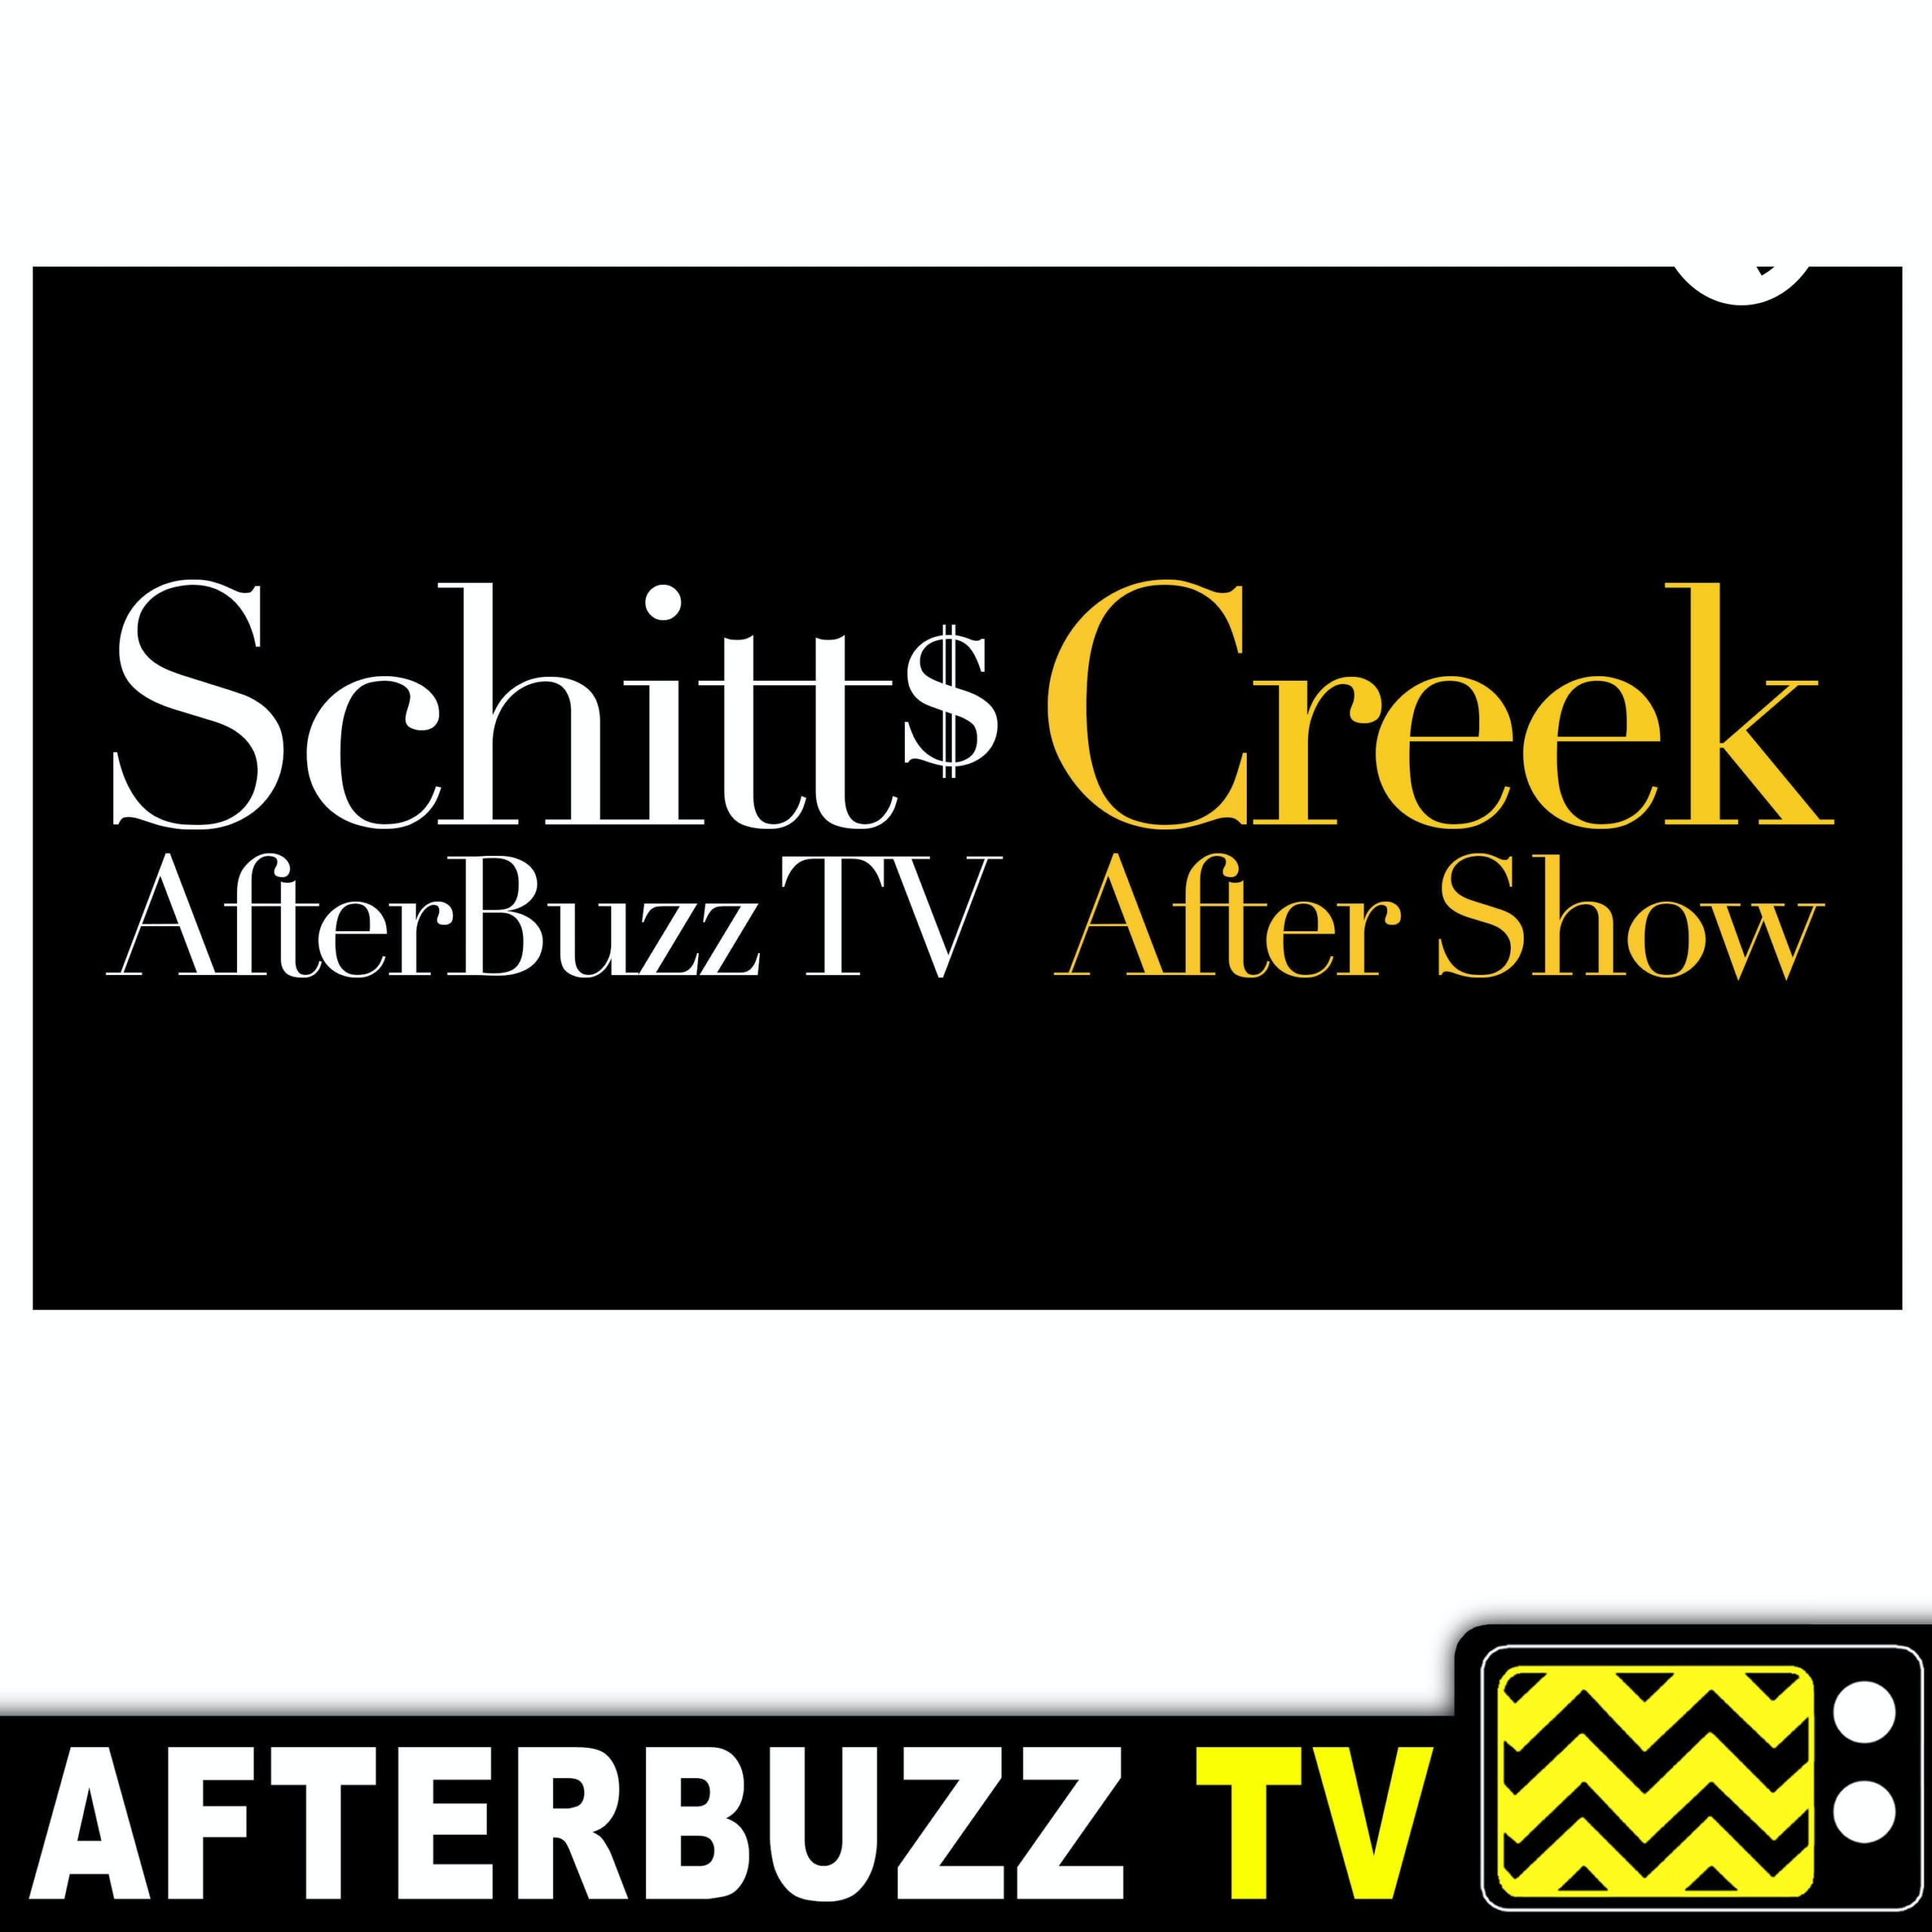 Best Wishes And Warmest… I'M NOT CRYING, YOU'RE CRYING! – S6 E14 'Schitt's Creek' Recap & Review